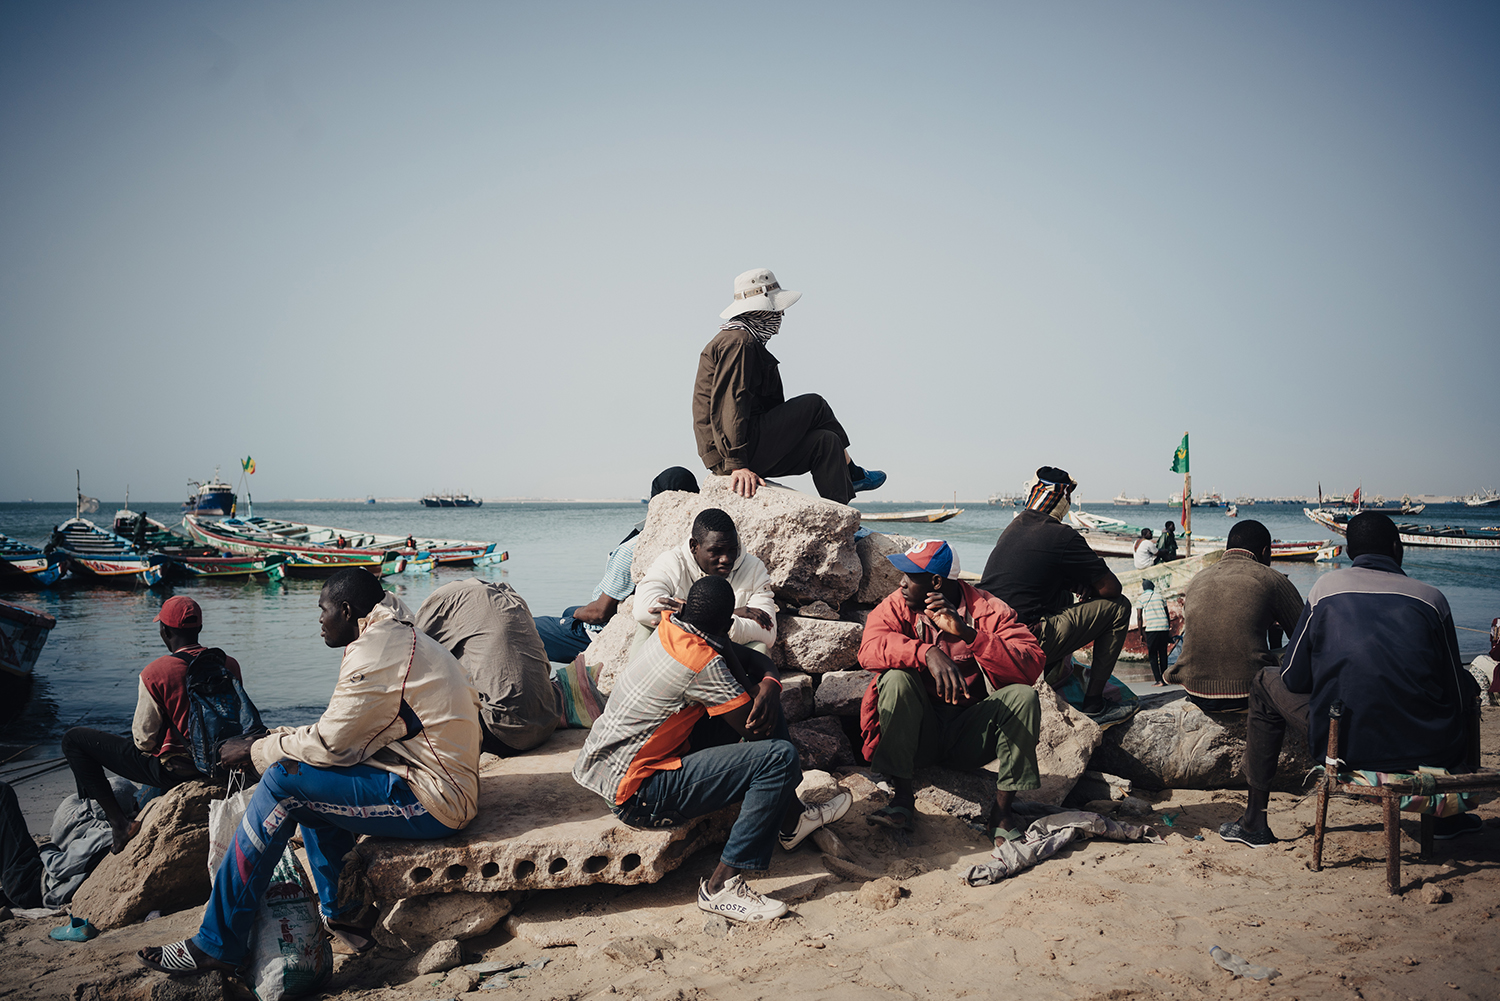 In the morning, Liu, in a white hat, oversees the transfer of fish from boats to trucks on the shore, June 29, 2016. On average, the factory goes through 200 tons of fresh fish per day, mainly supplied by Senegalese and Mauritanian boats. But, as the number of fishmeal factories has increased, demand often exceeds supply and some Chinese factories have started to form their own fishing fleets.